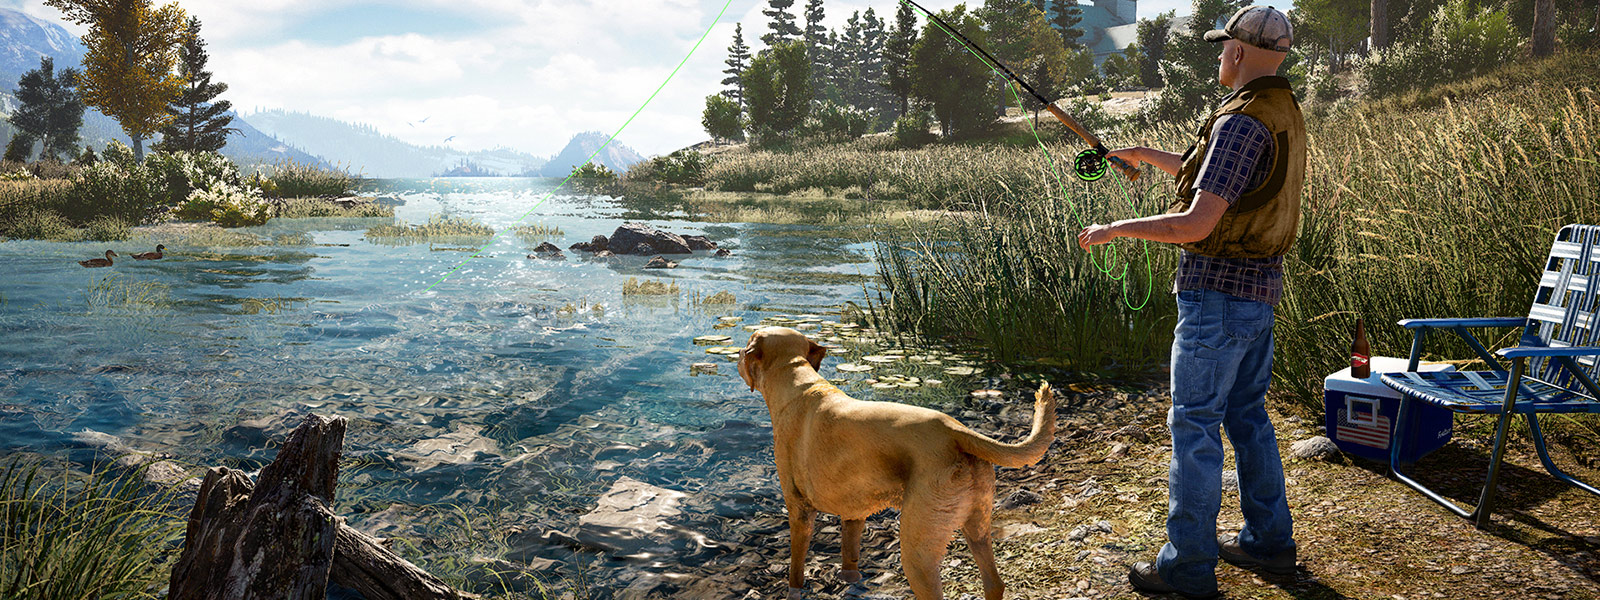 A man fly fishing with his dog on a river